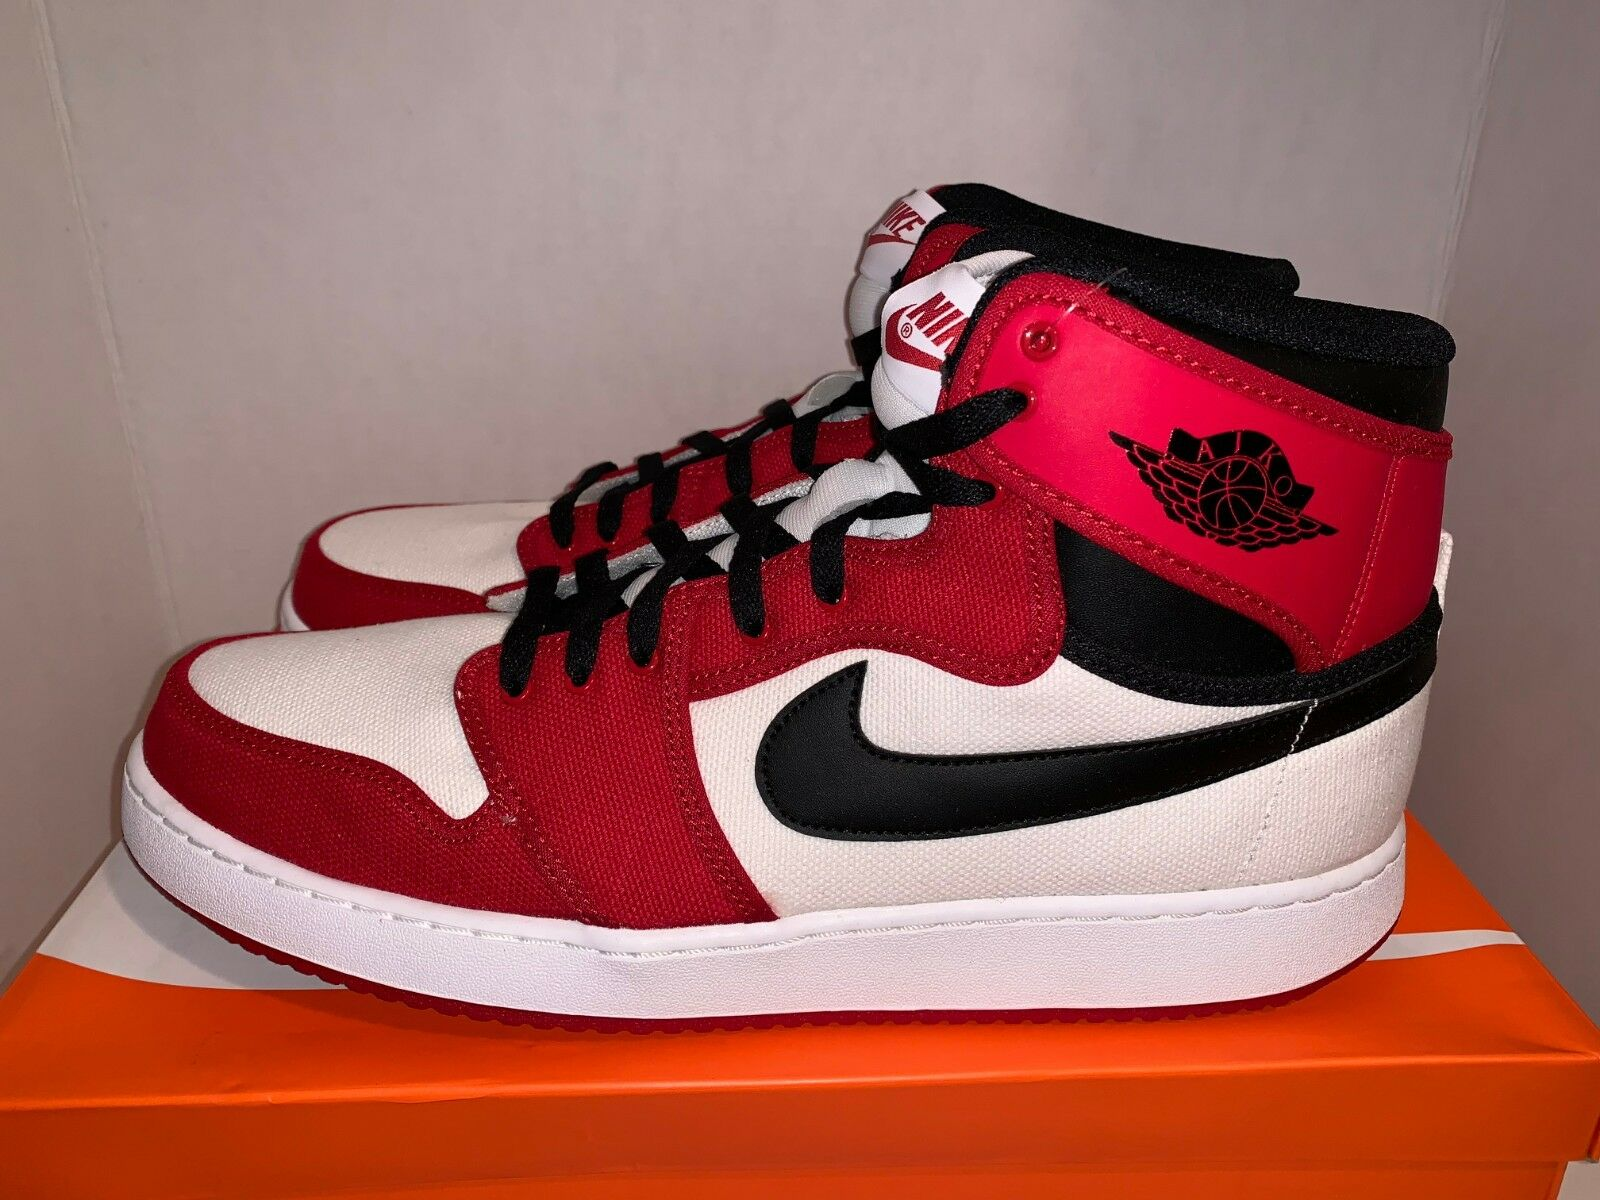 best loved a8d03 333b0 Jordan 1 High Bred AJKO Size 13 638474 101 Retro KO ...